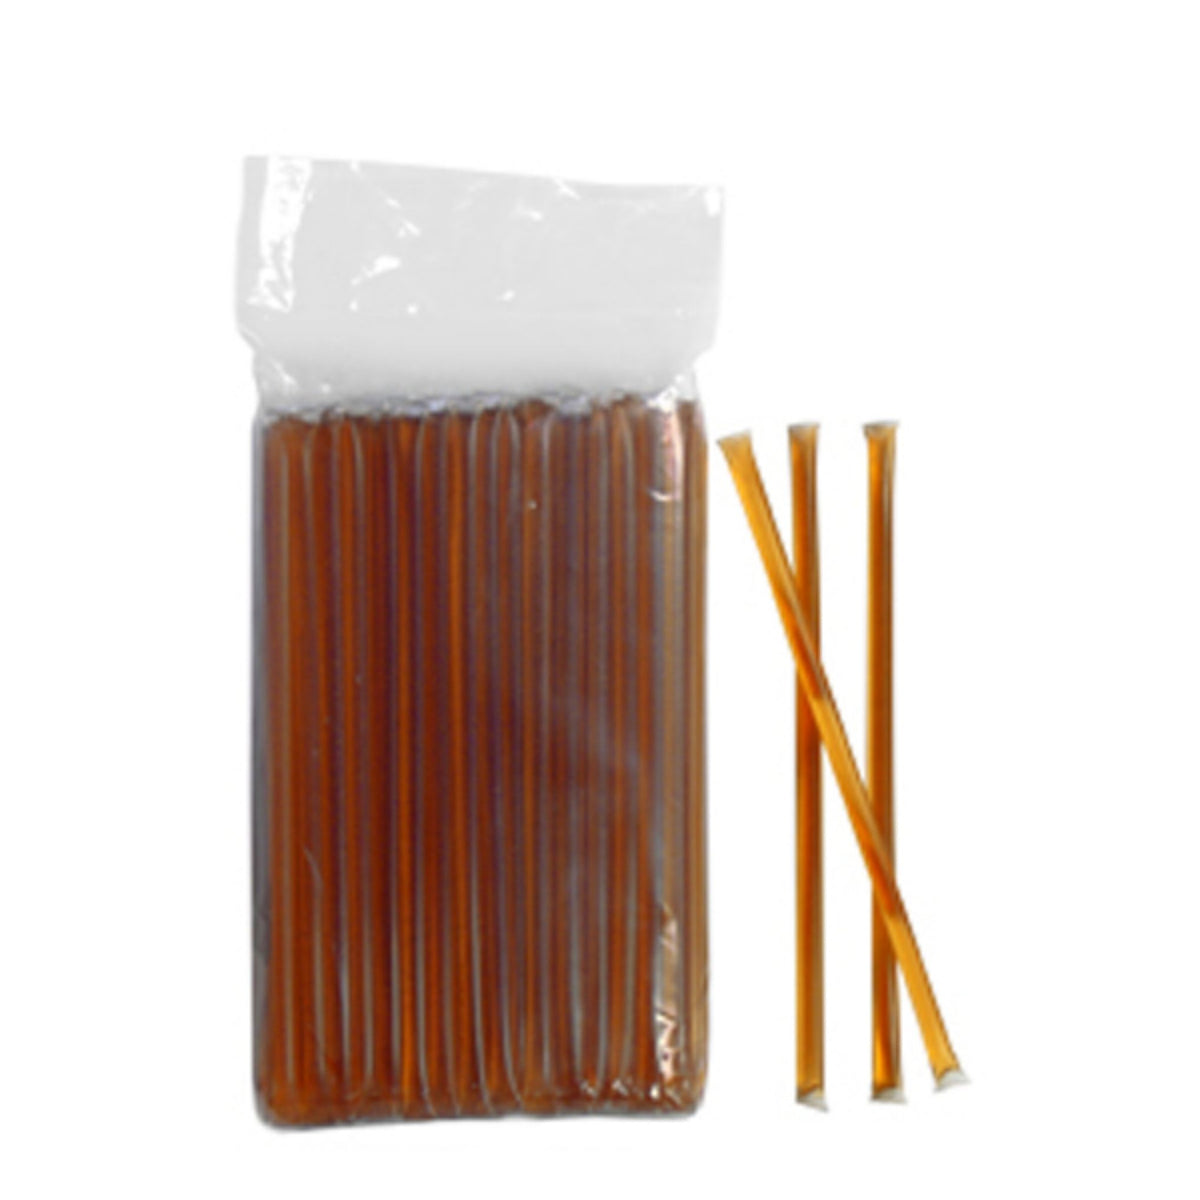 Anna's Sweet and Sour Lemon Flavored Honey Sticks in a Large Bulk Pack of 100